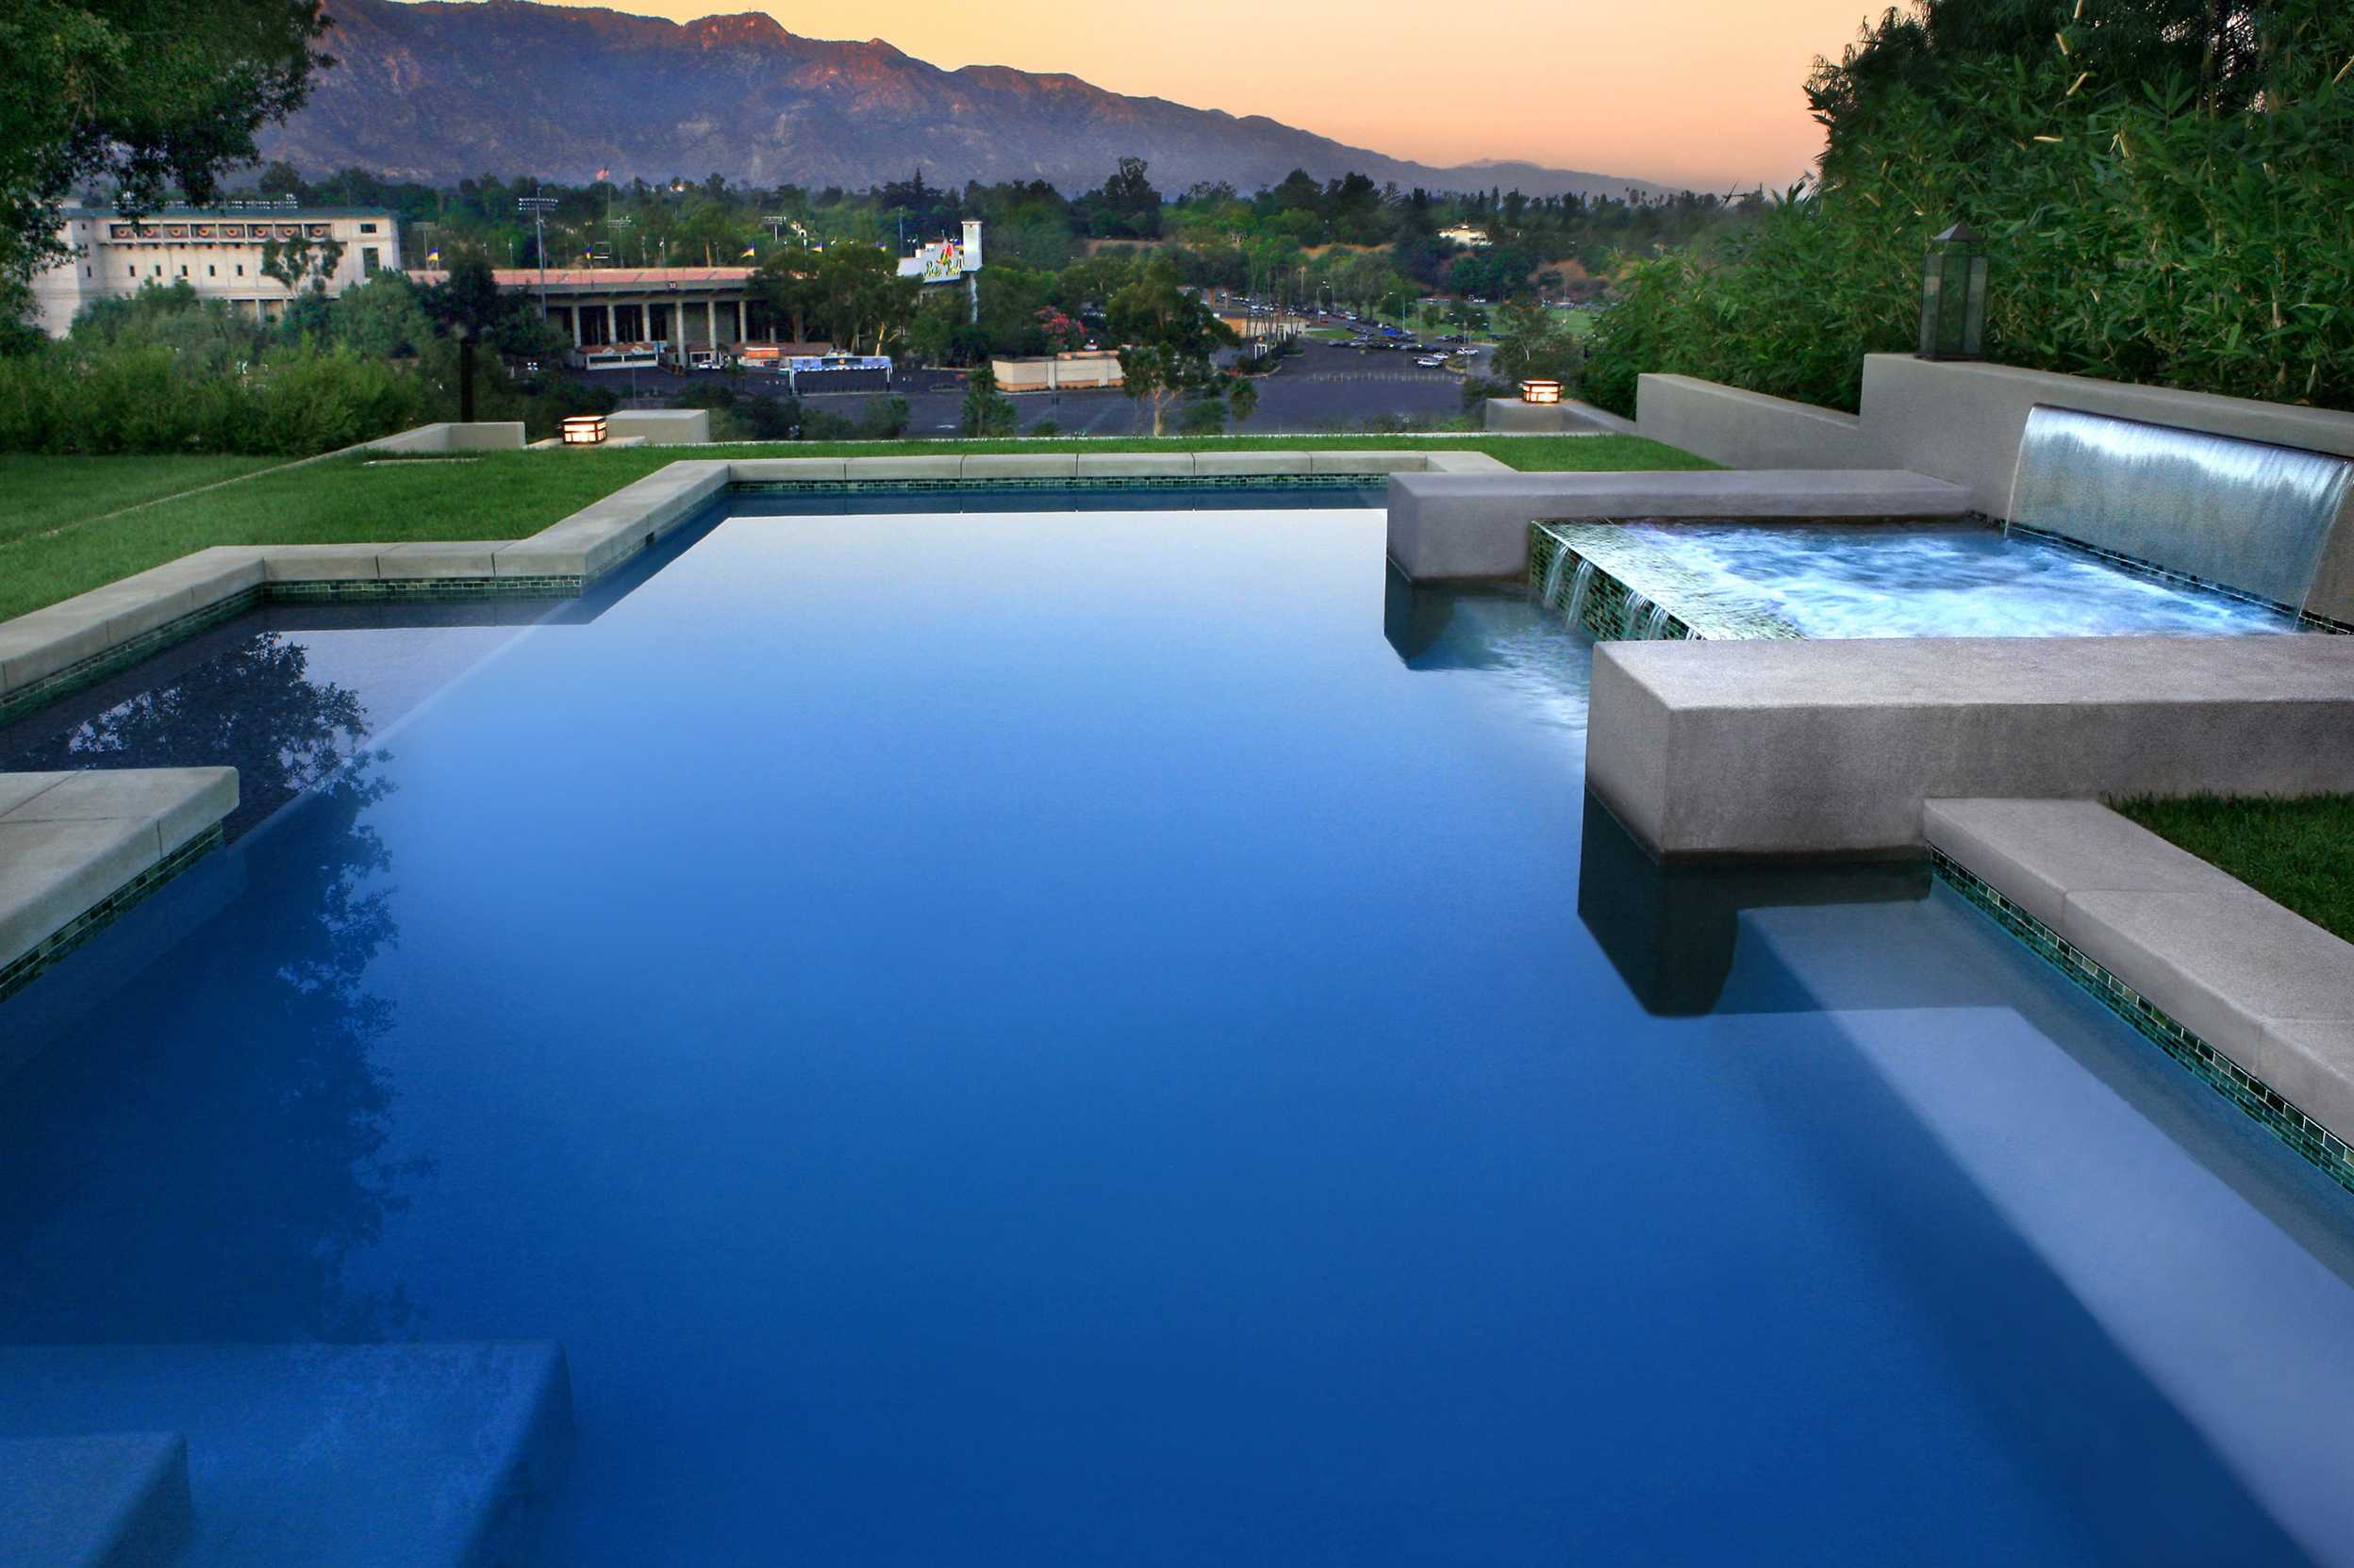 Infinity pool builders los angeles beverly hills ca for Pool design los angeles